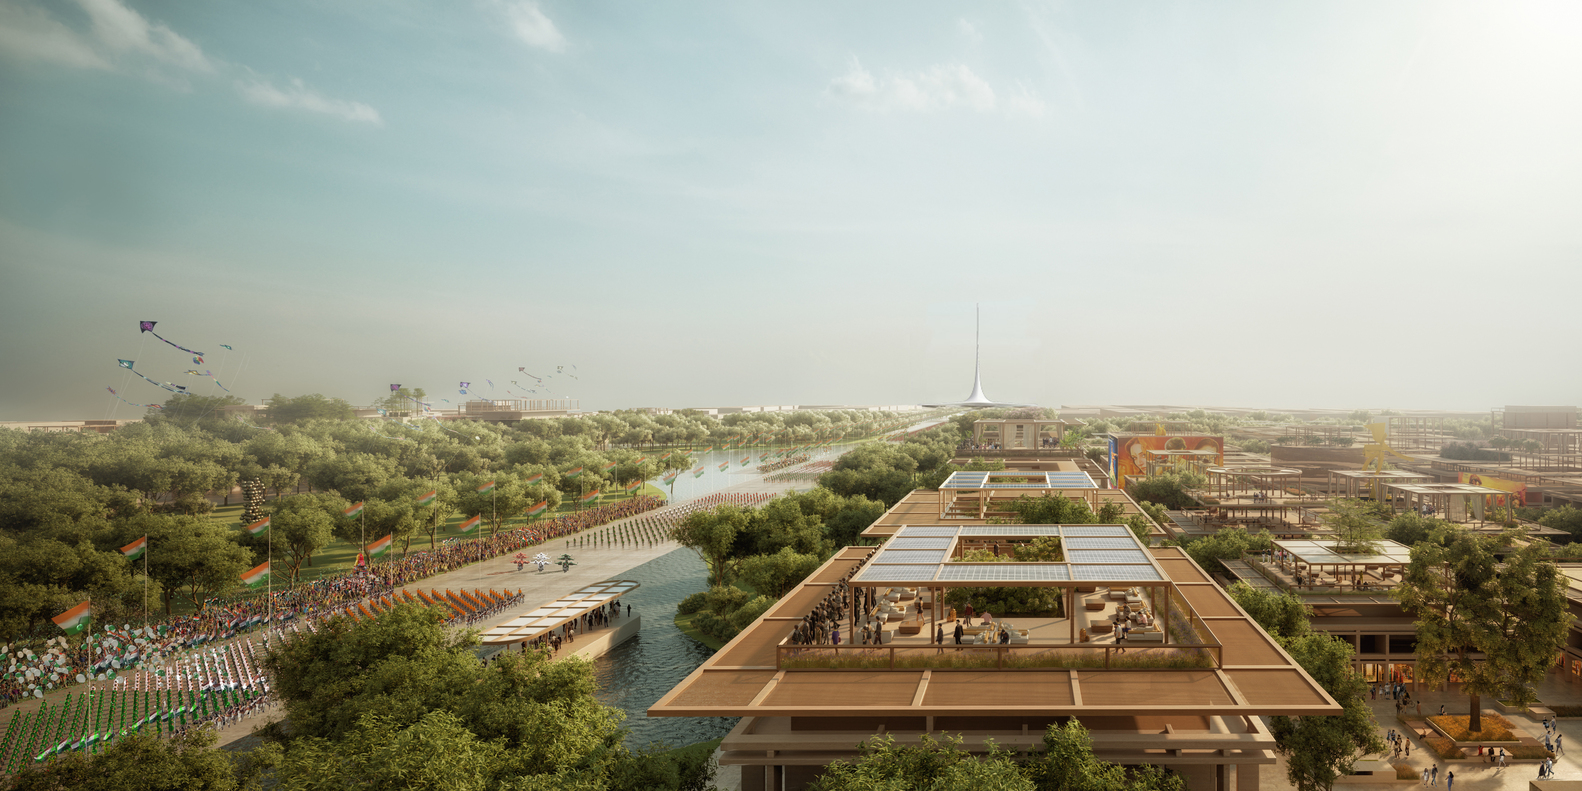 Foster + Partners Designs for Amaravati, the New Capital of Andhra Pradesh - IGS Magazine - 3